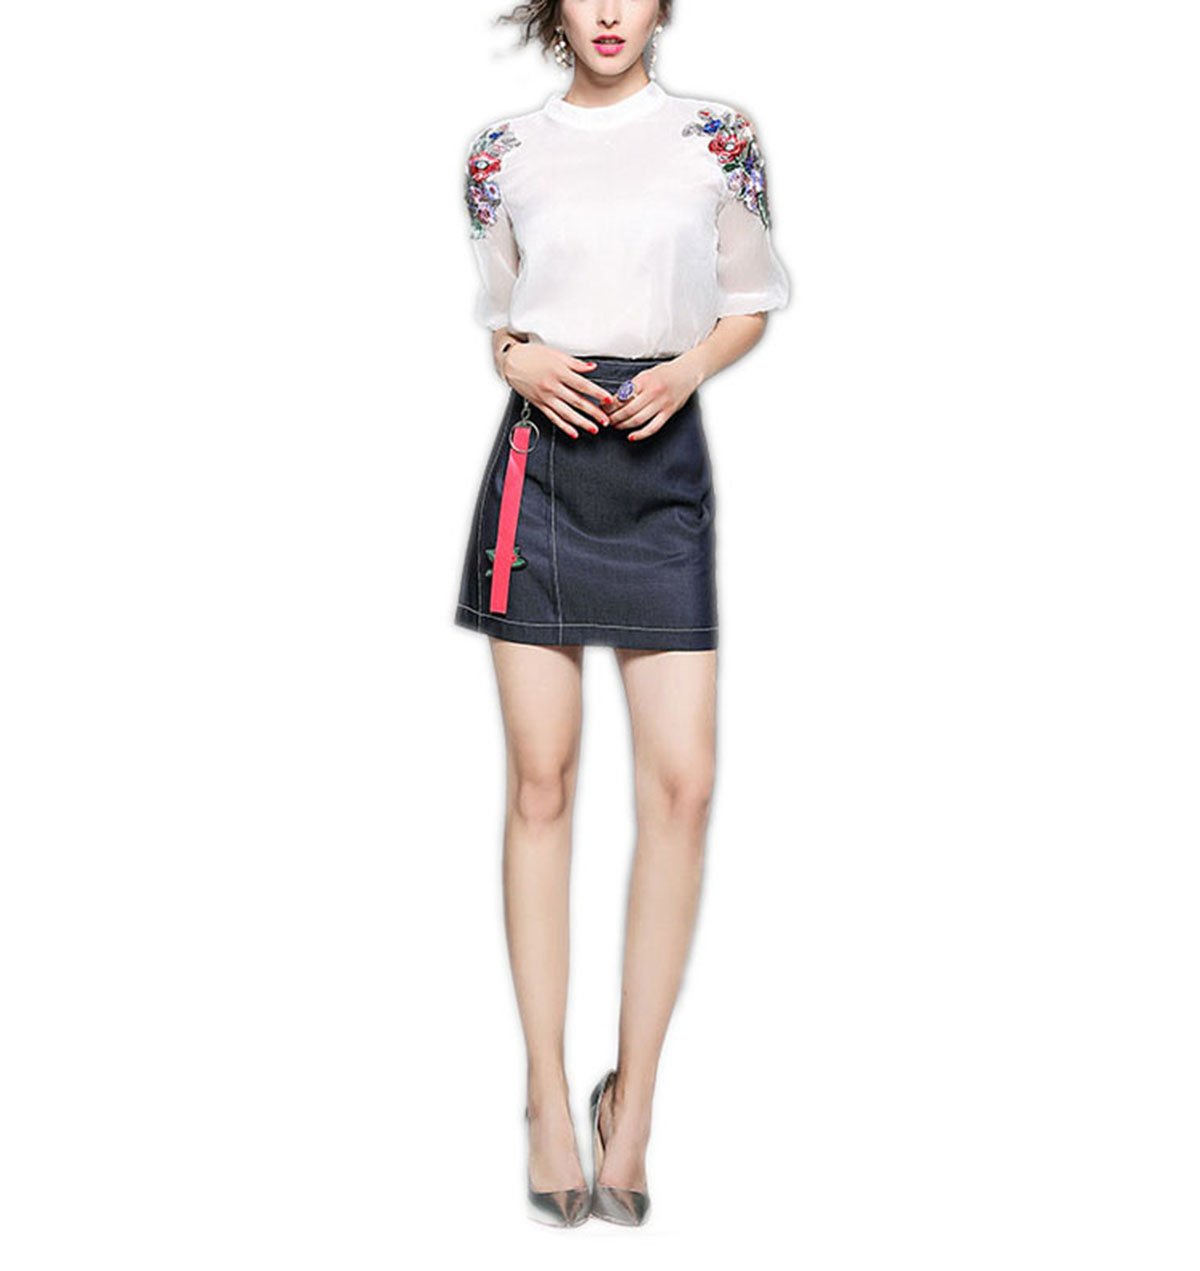 Weing New Women's Sexy Embroidery Blouse With Denim Skirts 2 Piece Dresses White XL